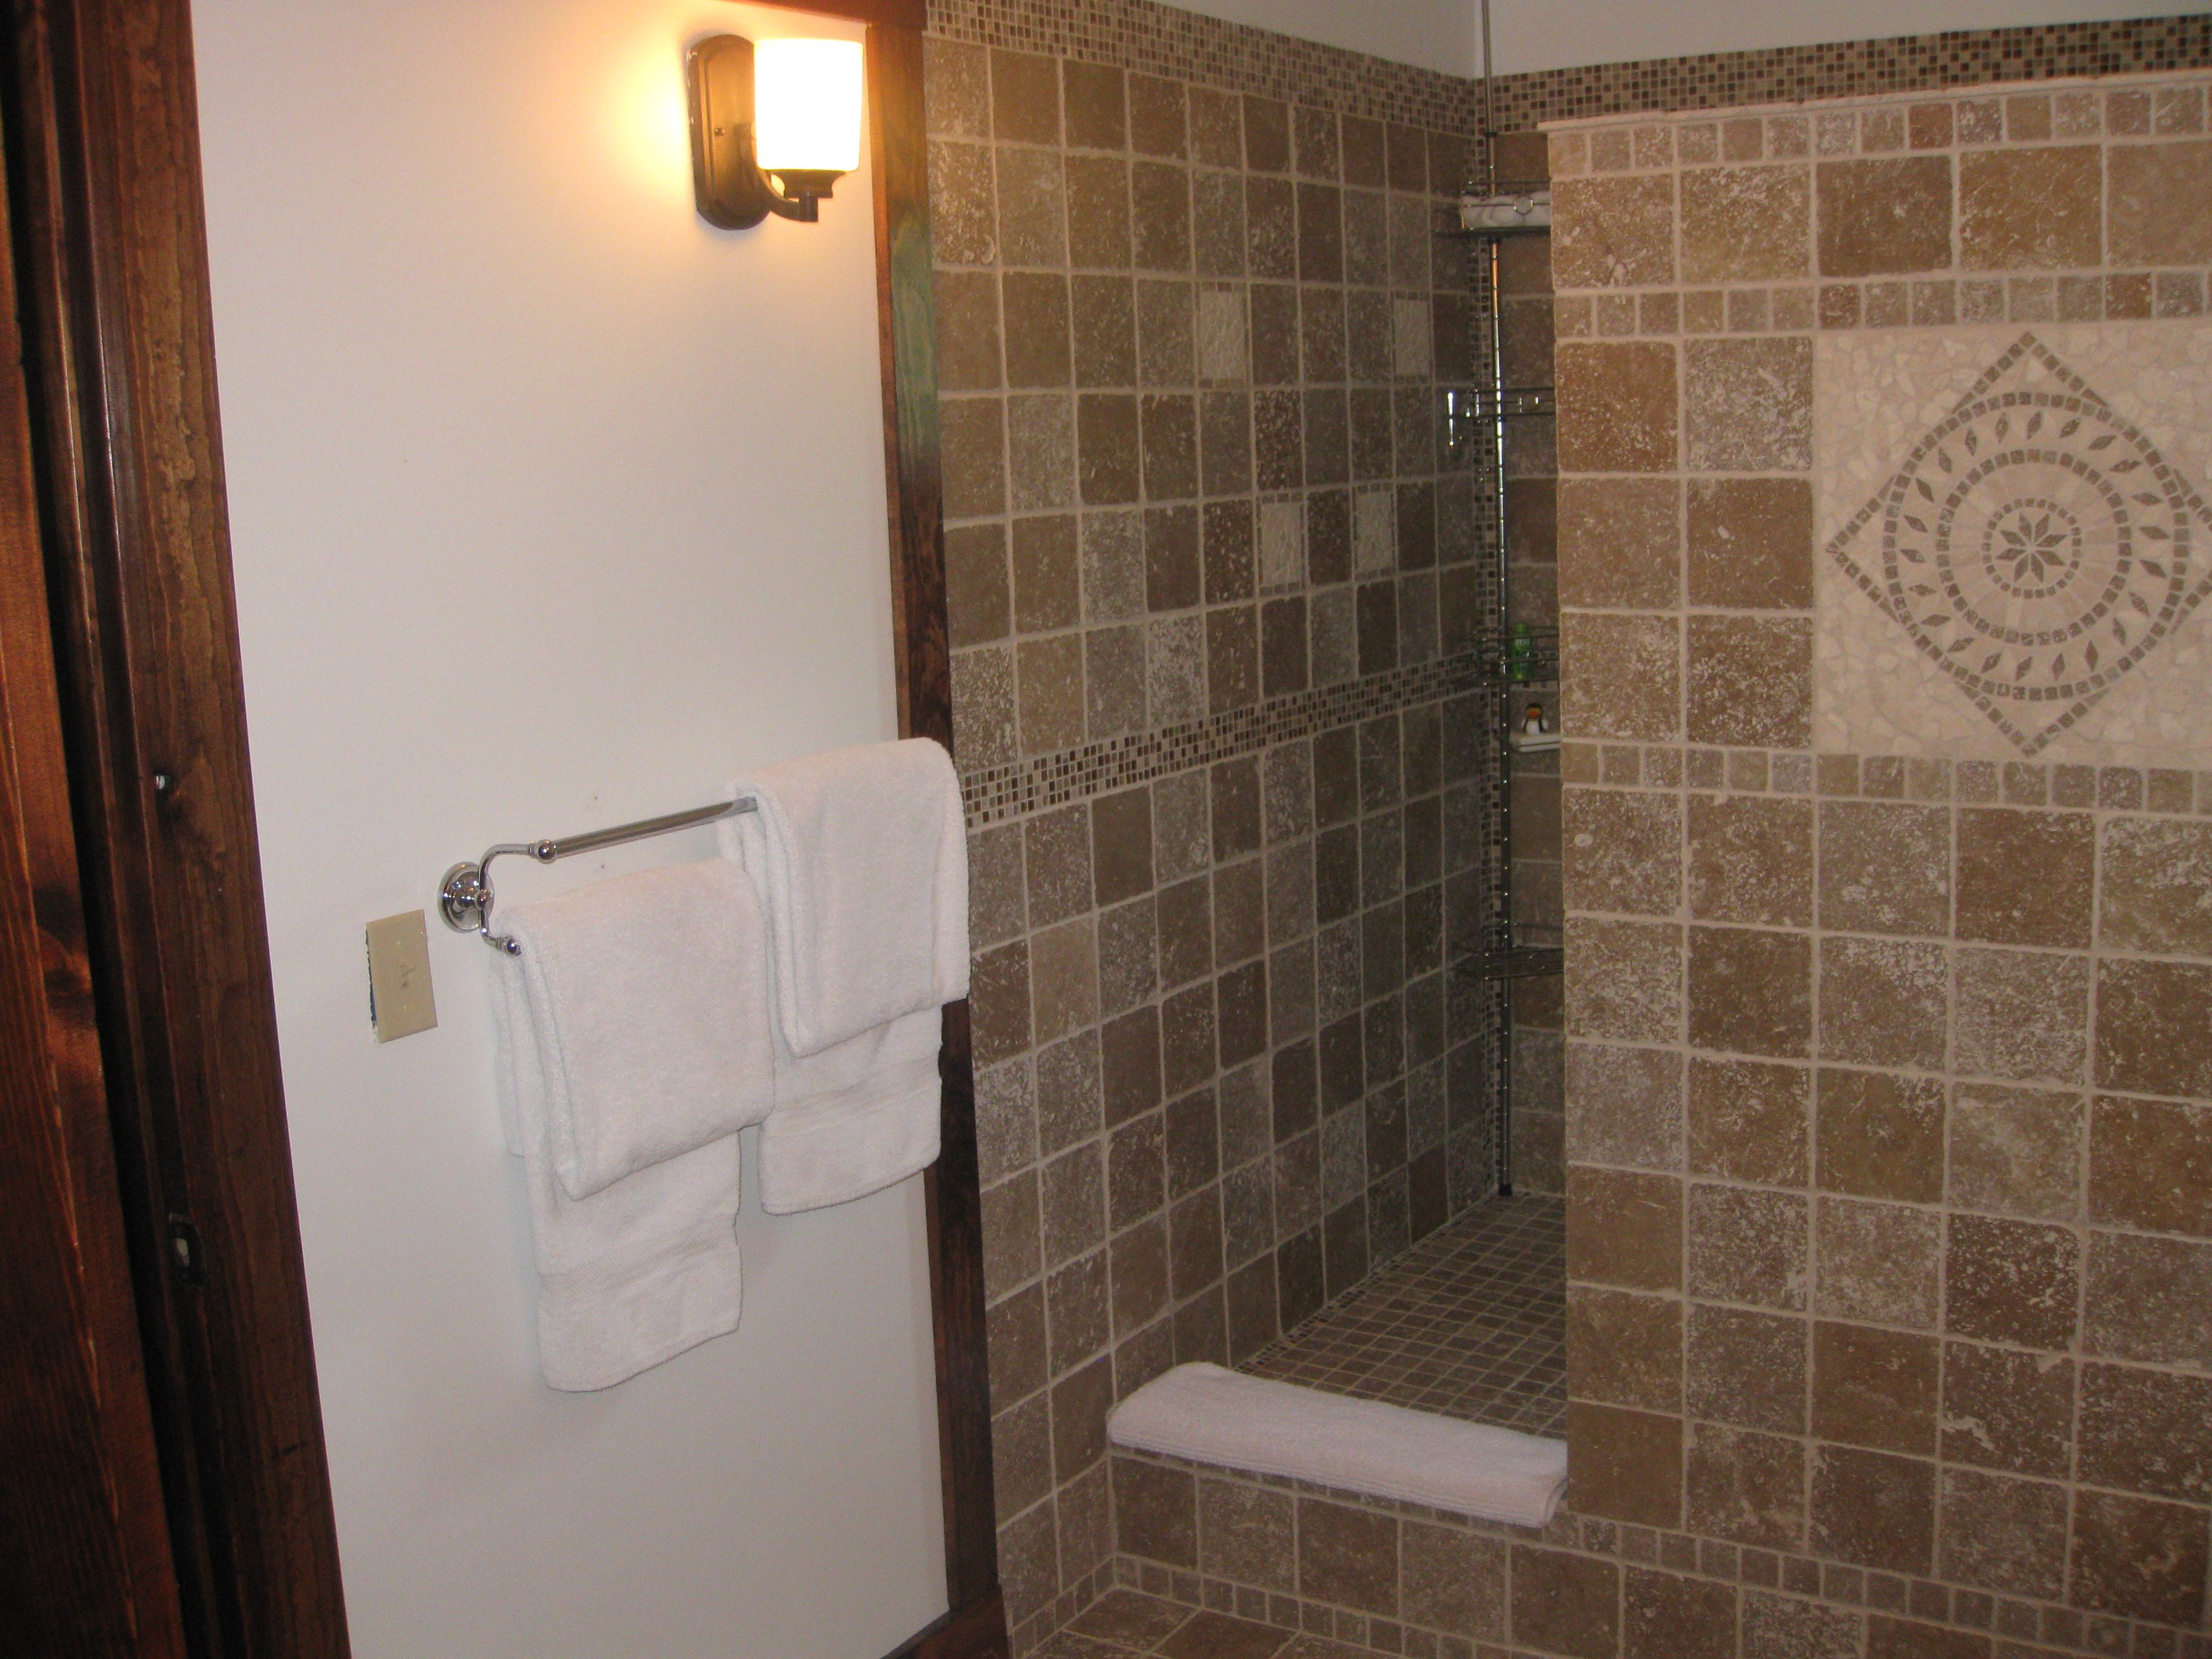 New for 2012 - The Wood Violet Room. A large walk-in shower stall of ...